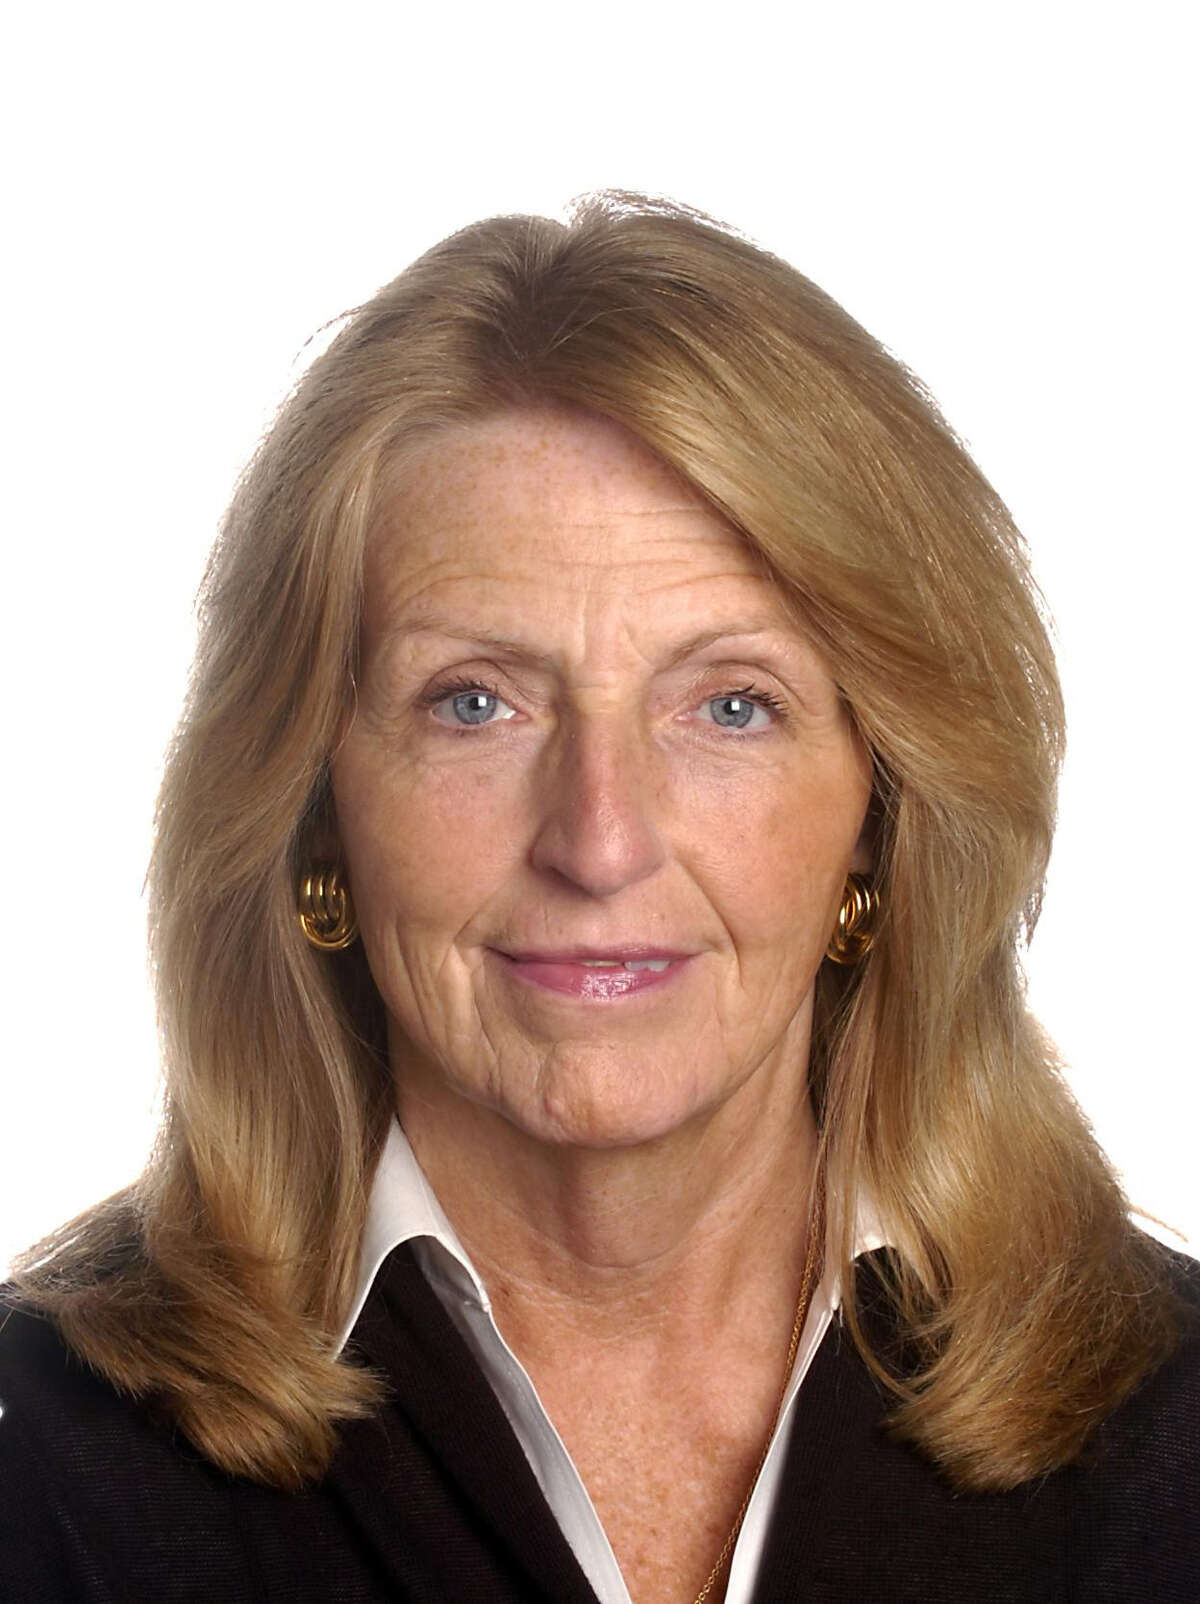 City of Stamford Town Clerk Donna Loglisci may be running as a Republican candidate for mayor in 2017